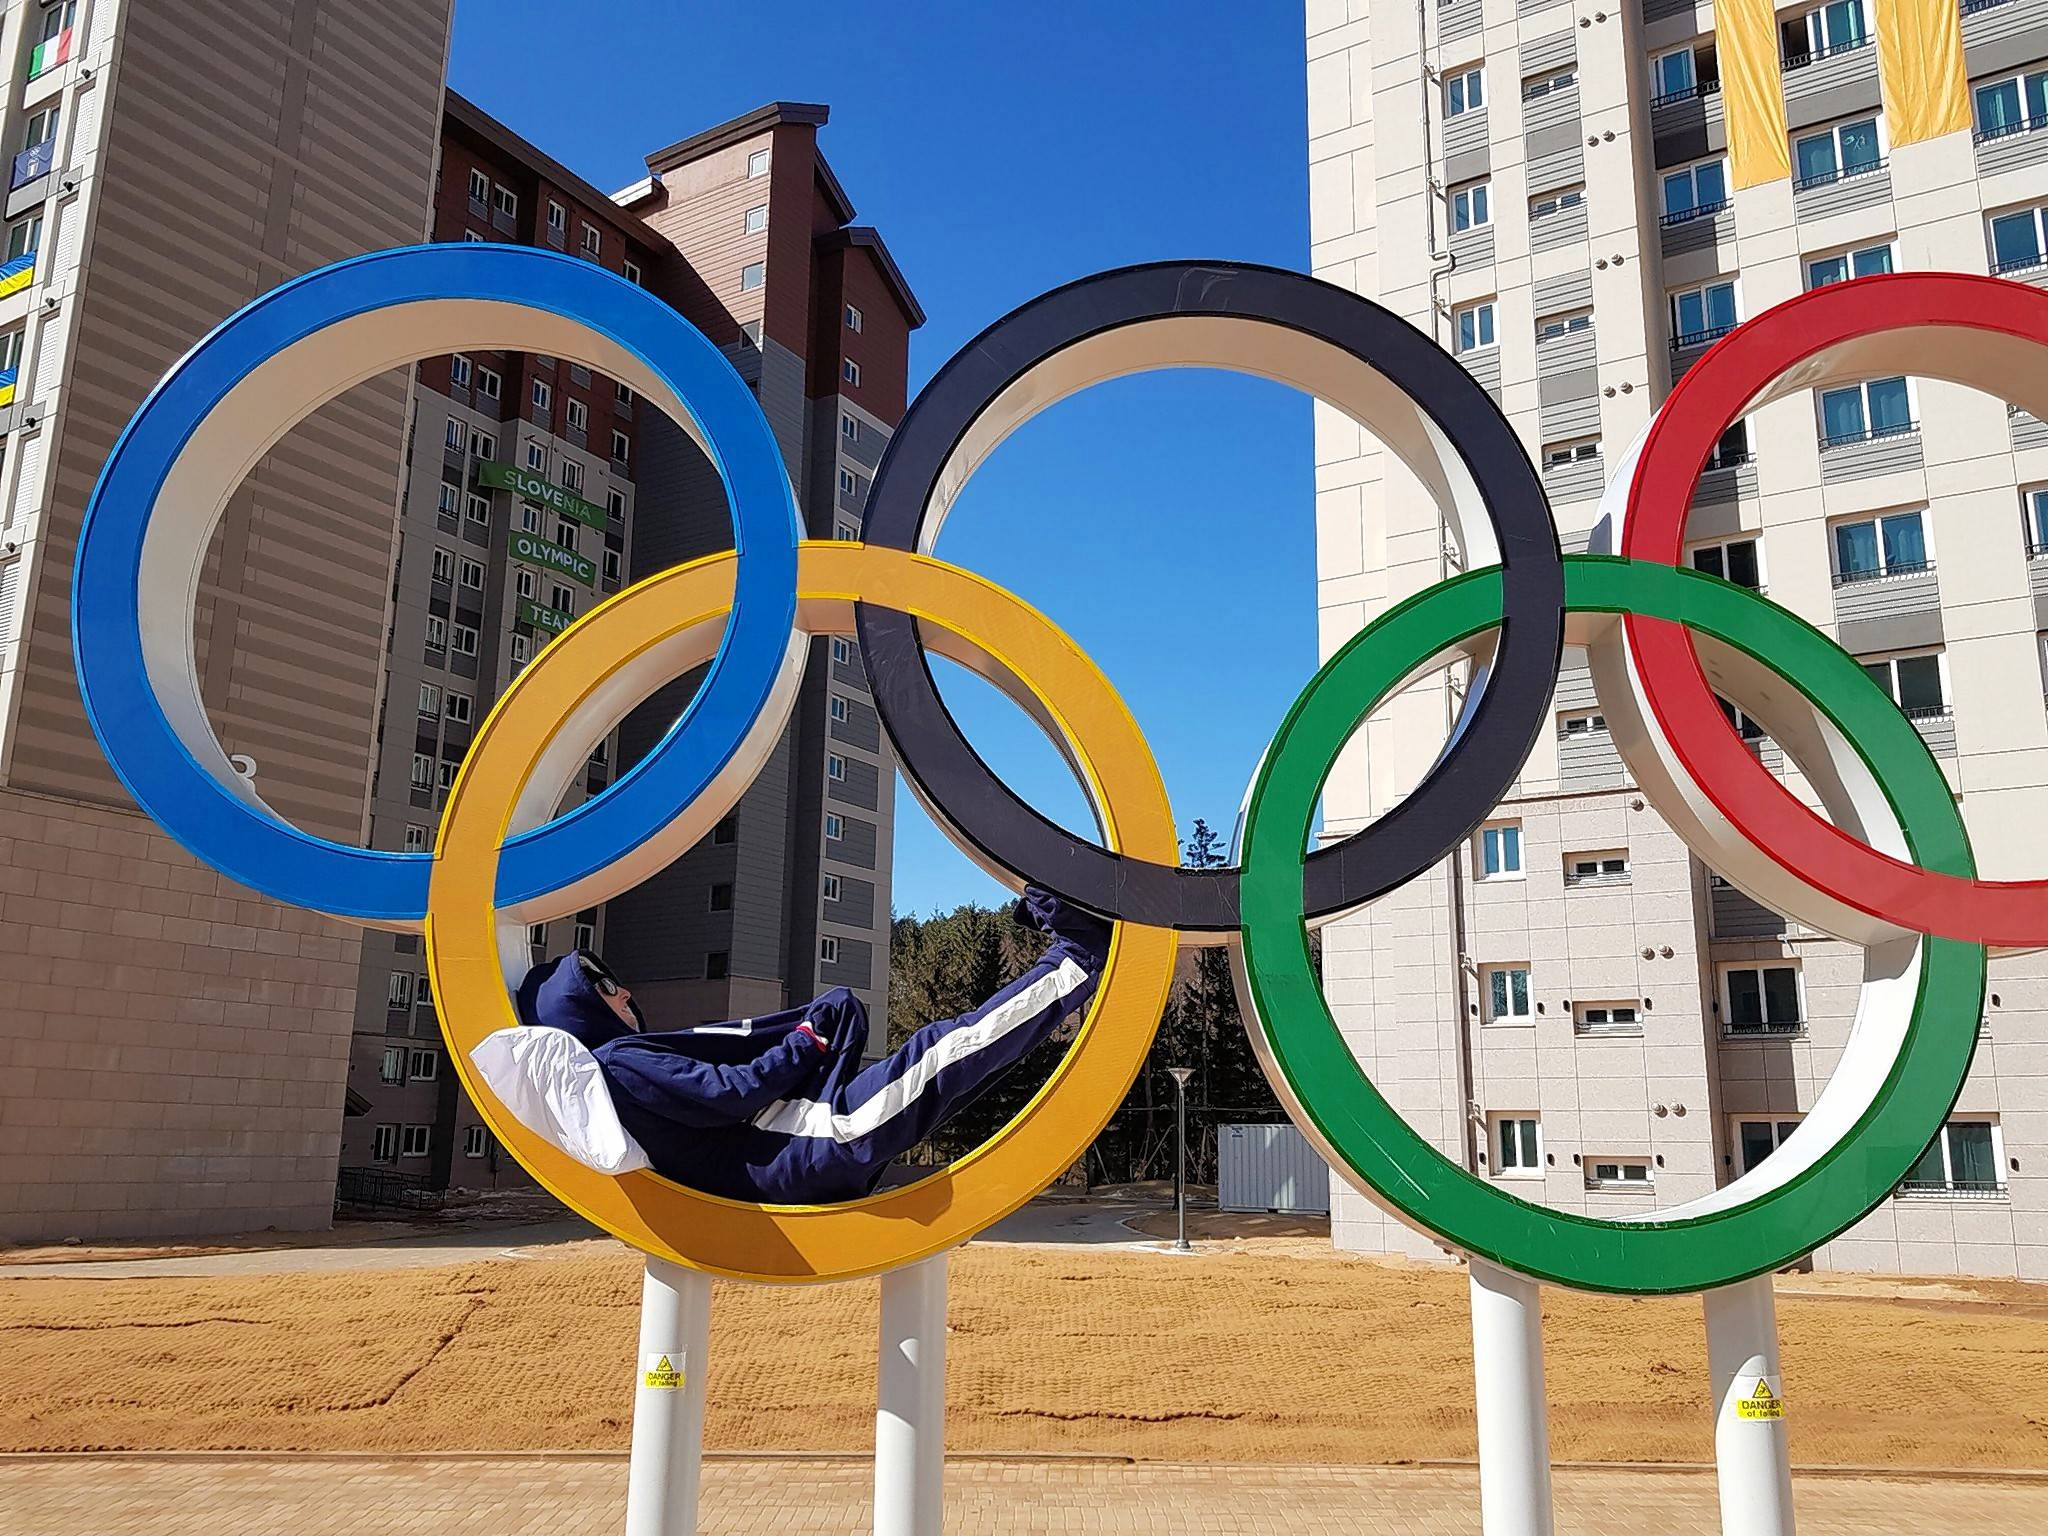 Ski jumper Kevin Bickner, a Wauconda native, takes a nap in the Olympic rings in Pyeongchang. He tweeted out this photo last week poking fun at his crazy sleep schedule.